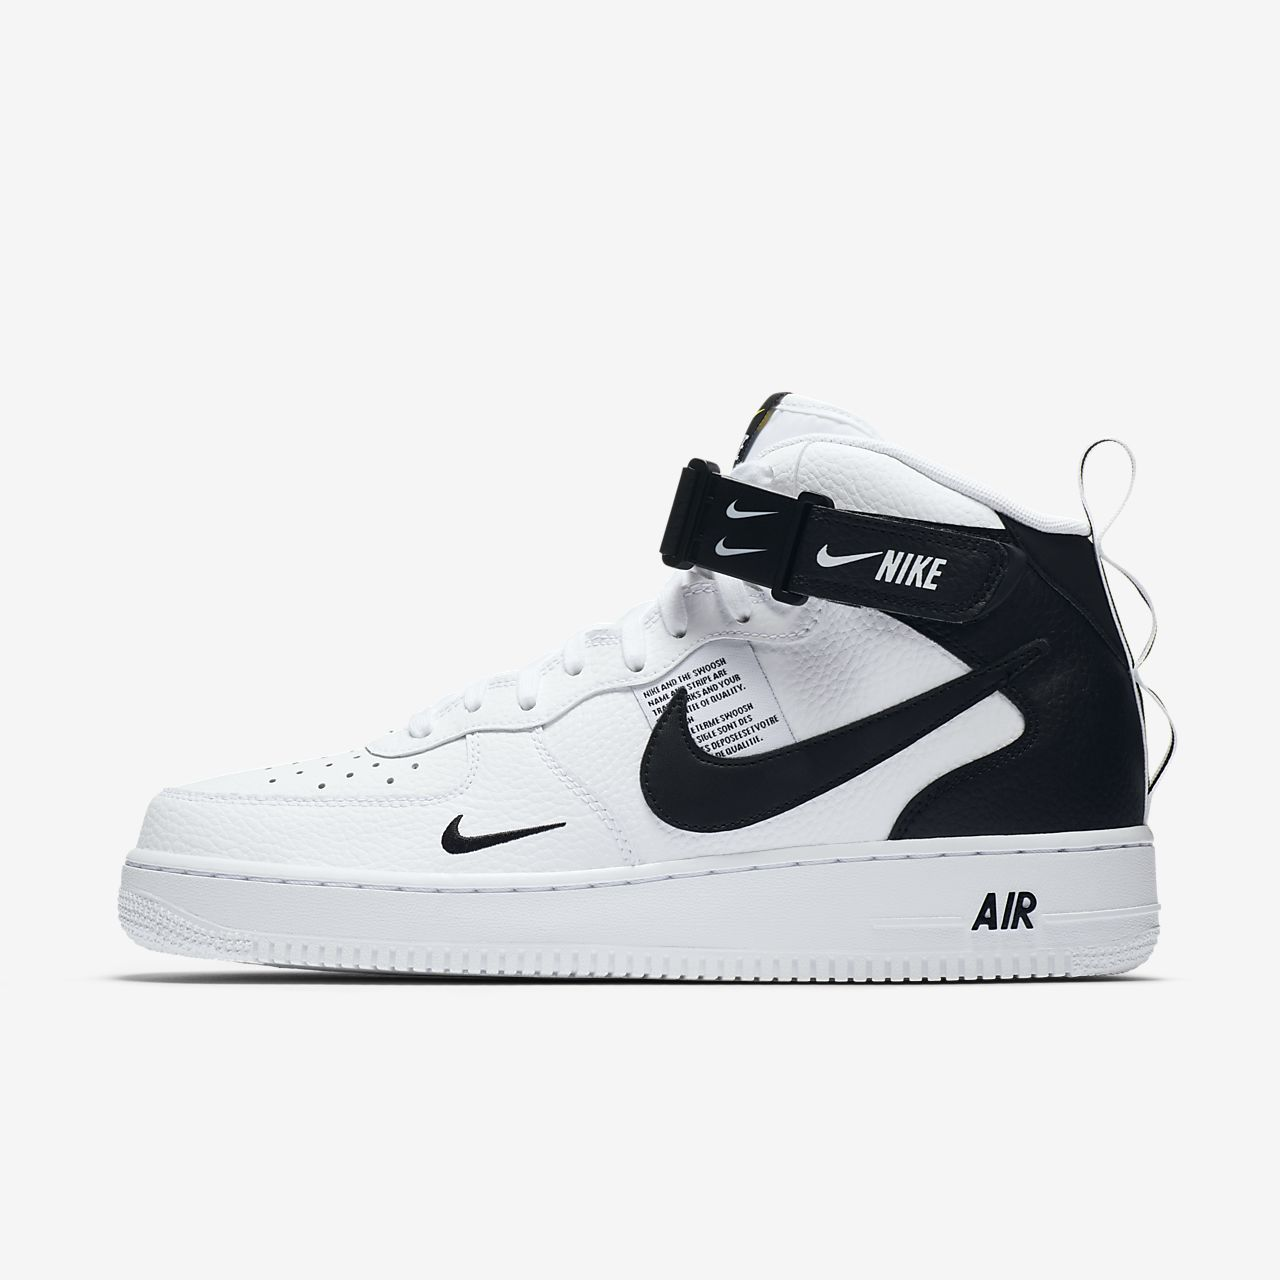 59d0423b Мужские кроссовки Nike Air Force 1 07 Mid LV8. Nike.com RU